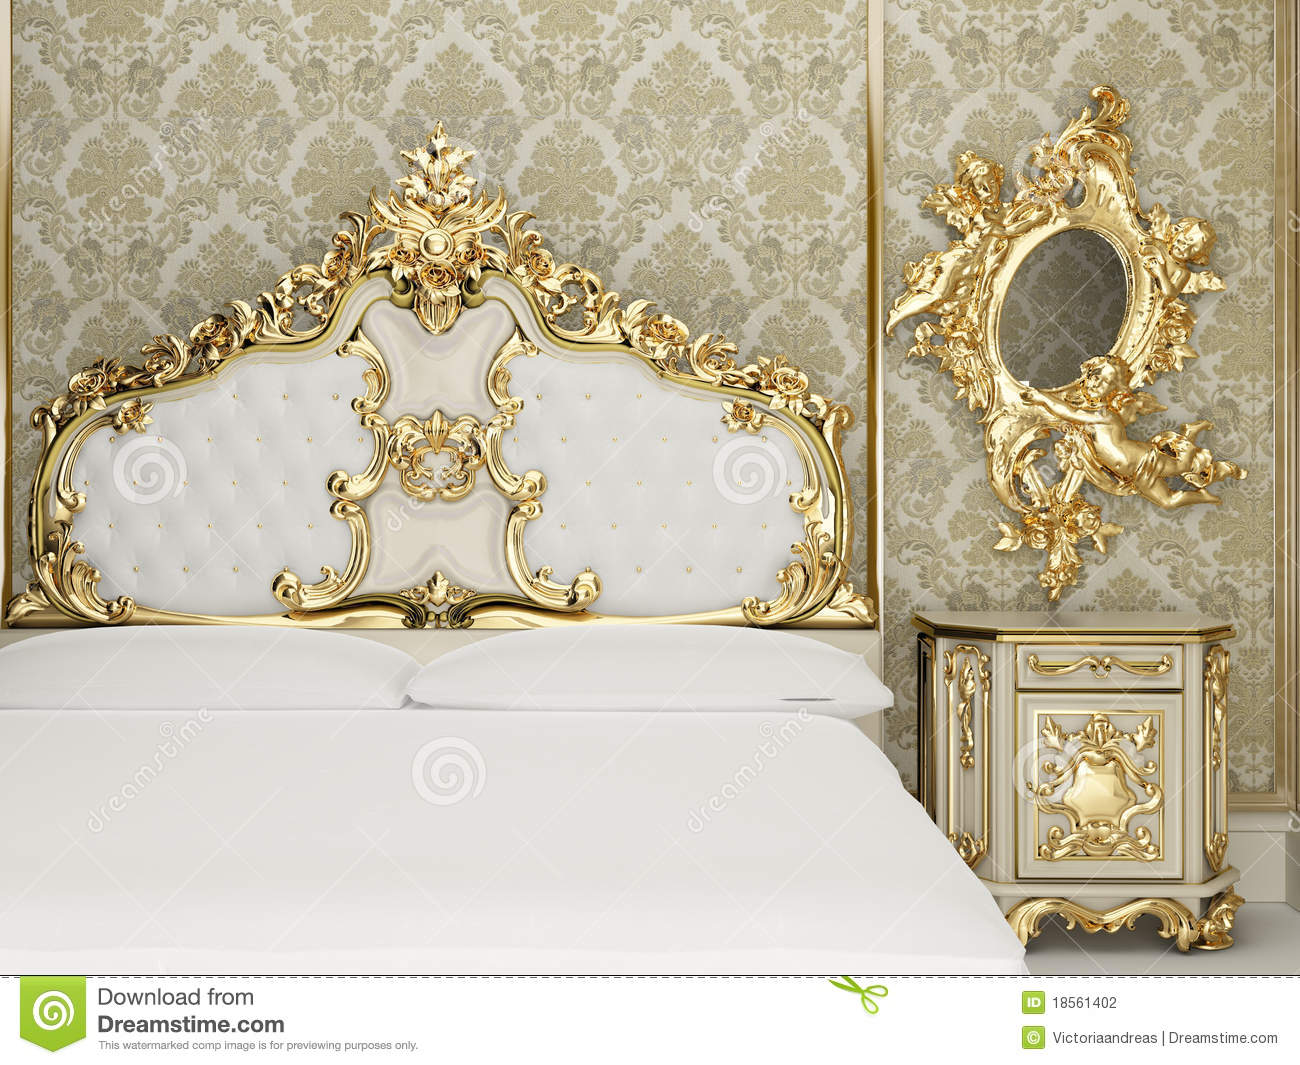 Baroque bedroom suite in royal interior. Old styled interior. Golden